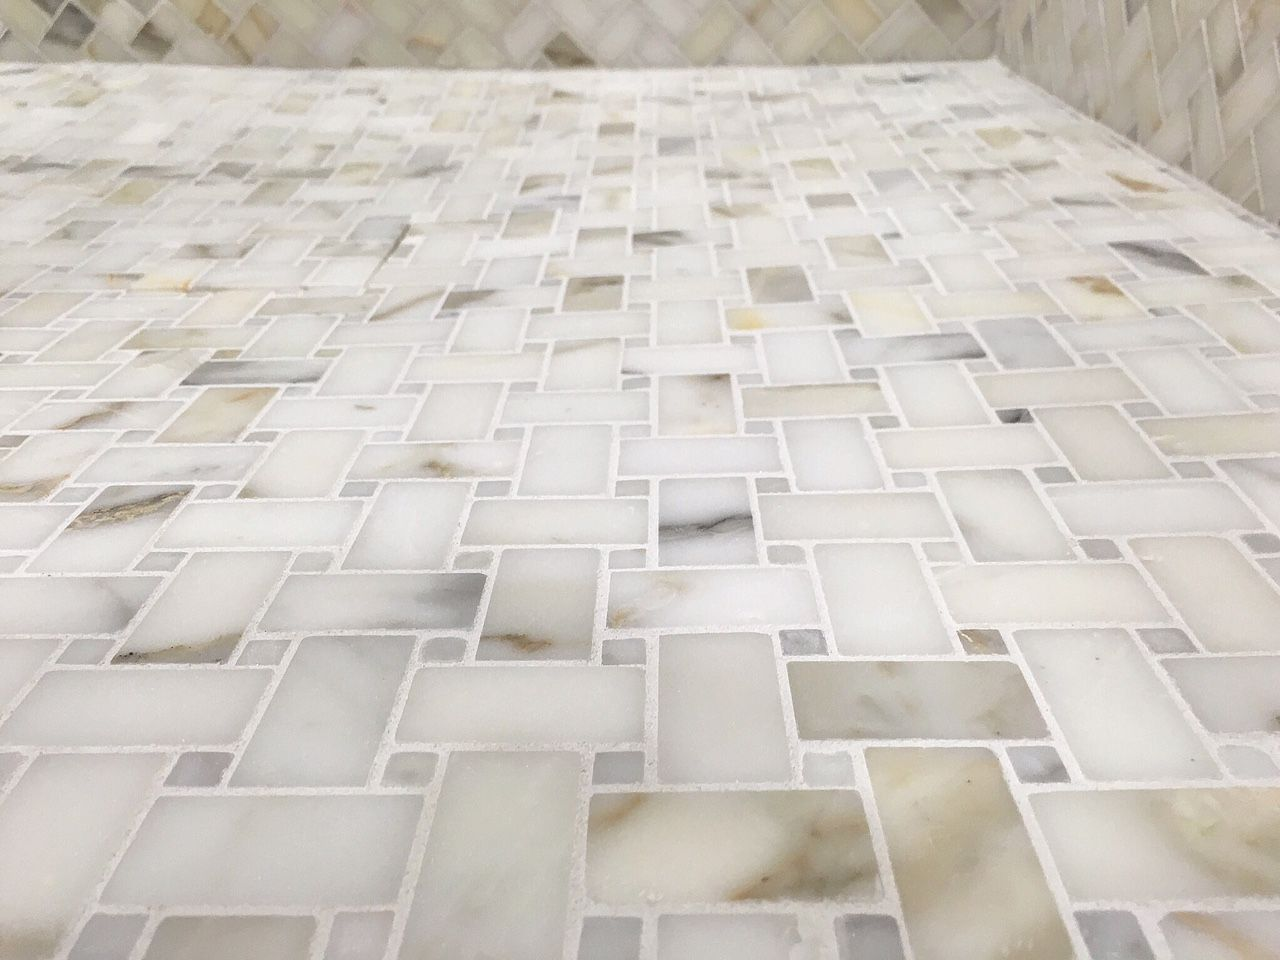 There S Nothing Like Calacatta Gold Flooring To Bring Your Bathroom Life Goo Gl Marble Showersmarble Bathroomstile